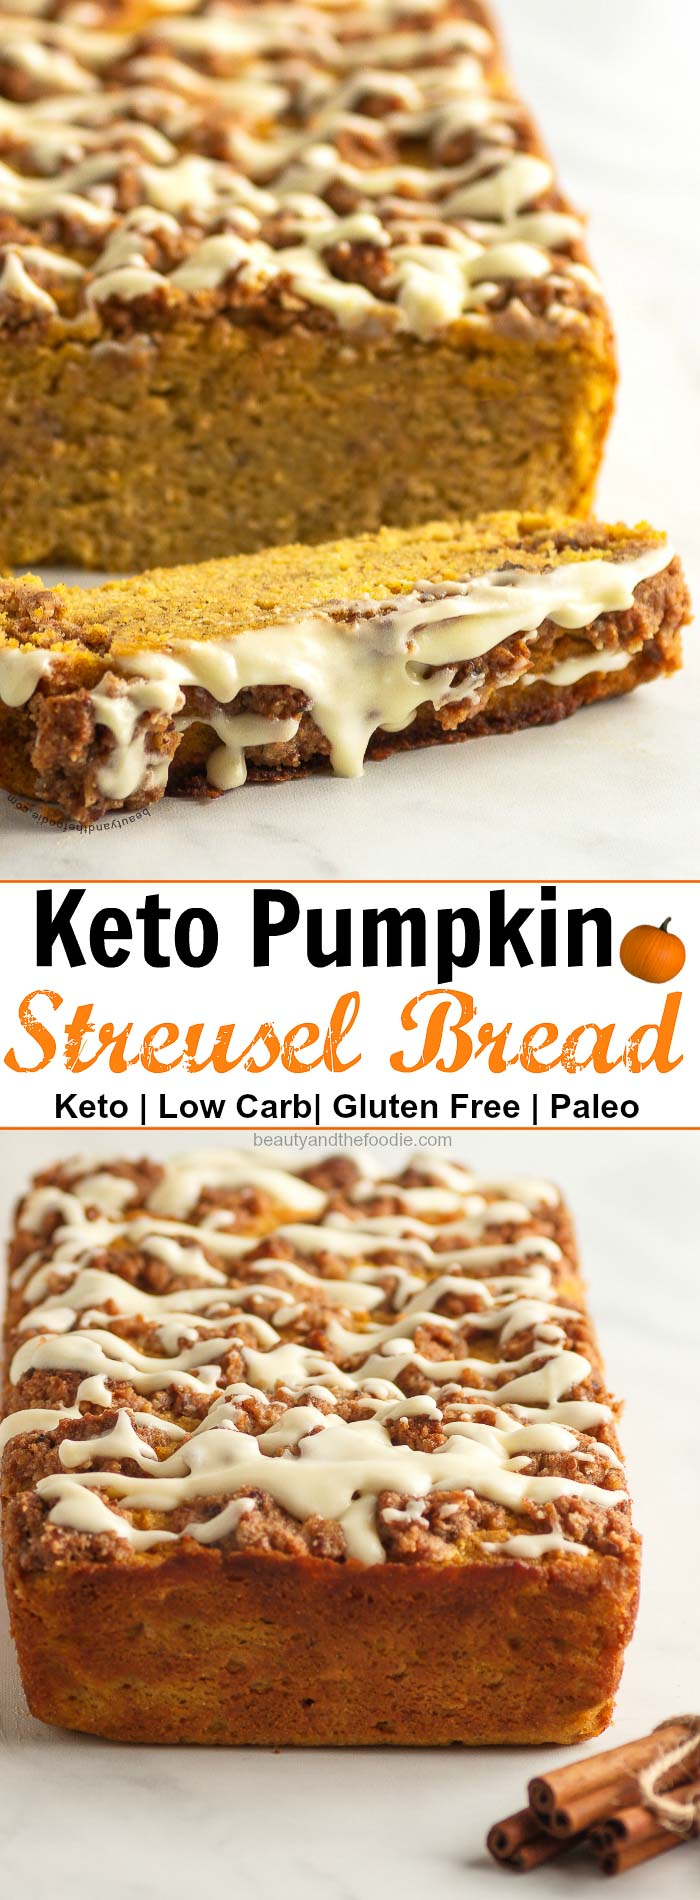 Keto Pumpkin Streusel Bread- Low carb, paleo option, & gluten free